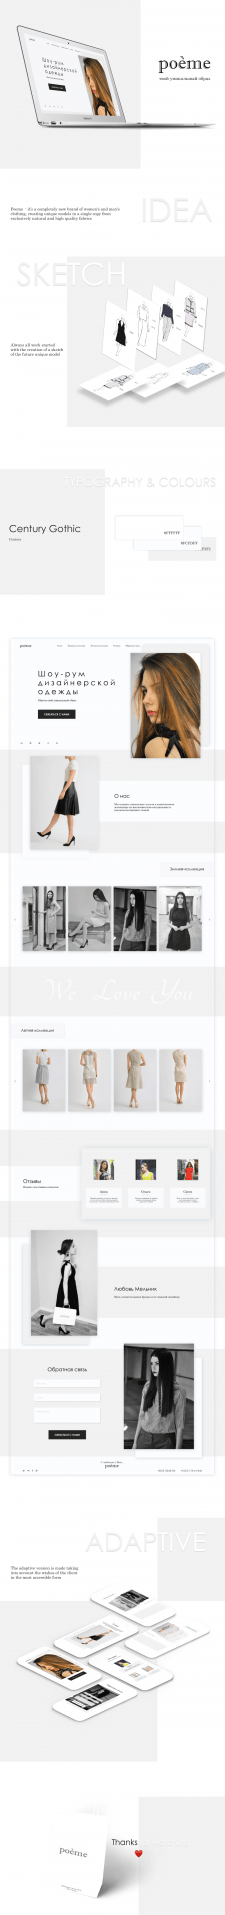 landing page for Poeme